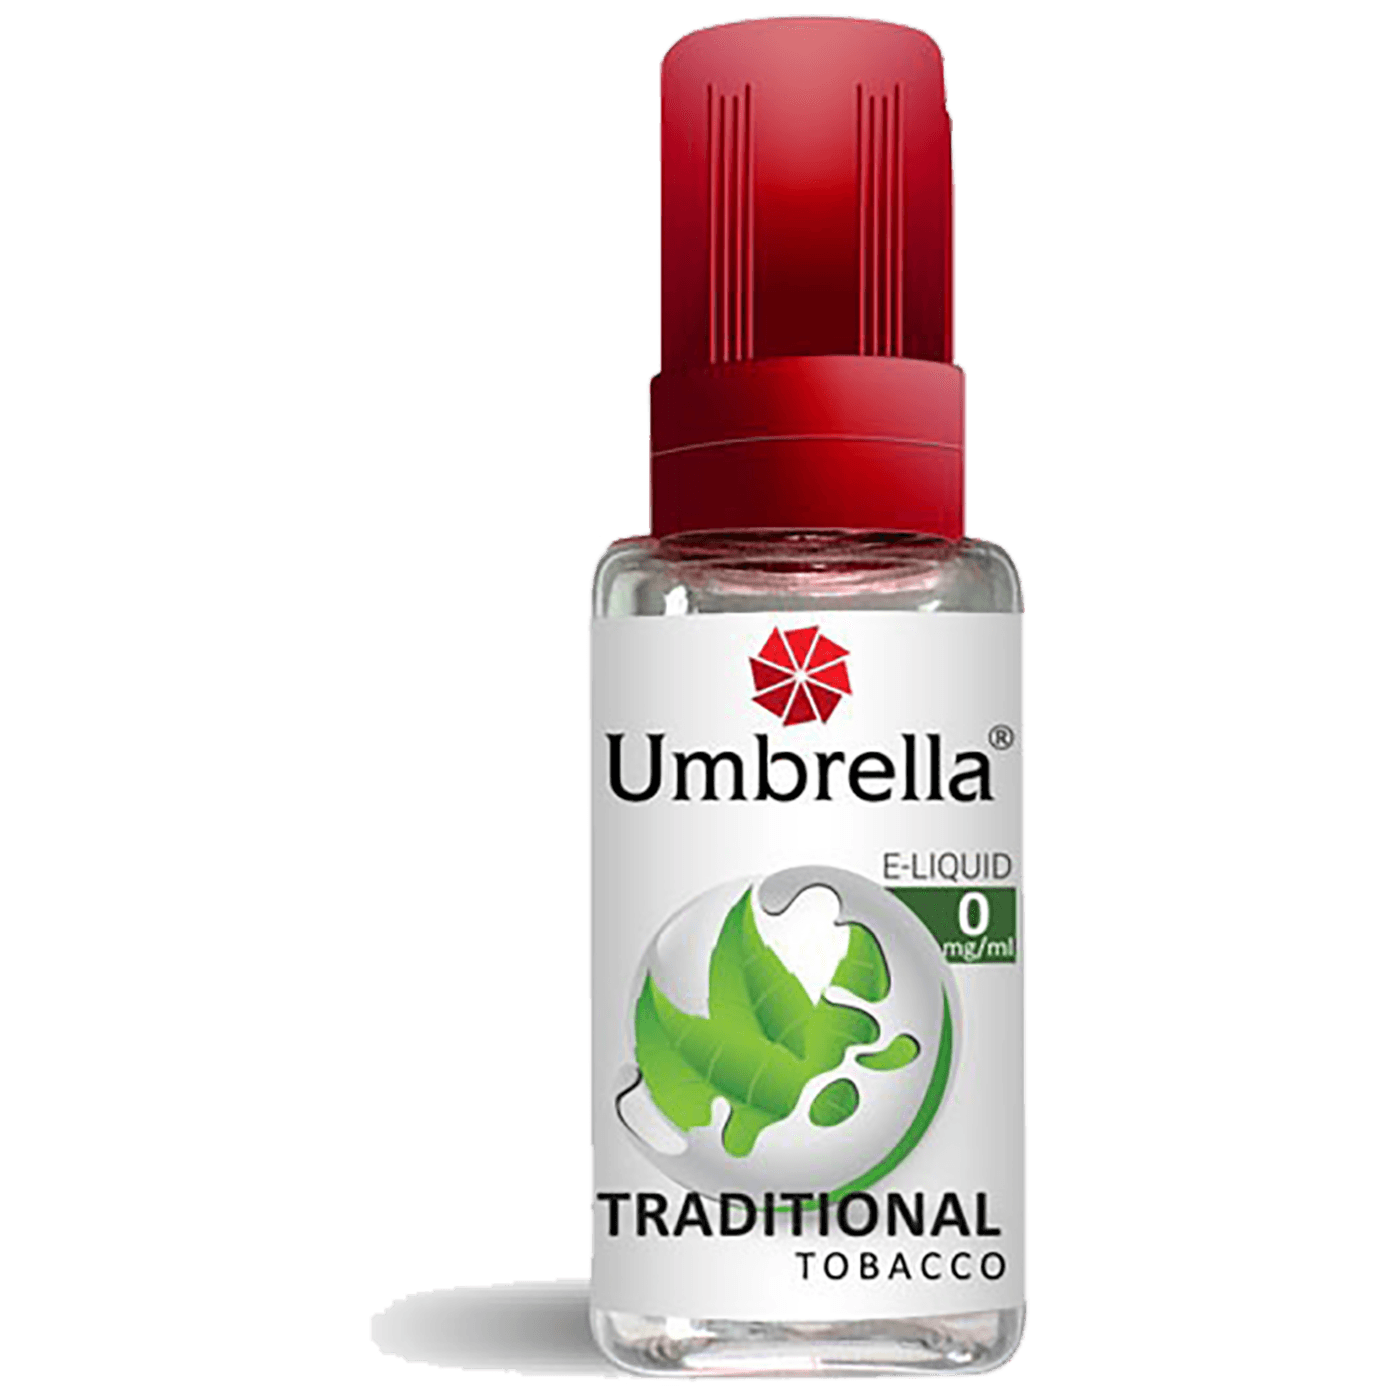 Umbrella - UM30 Traditional Tobacco 9mg